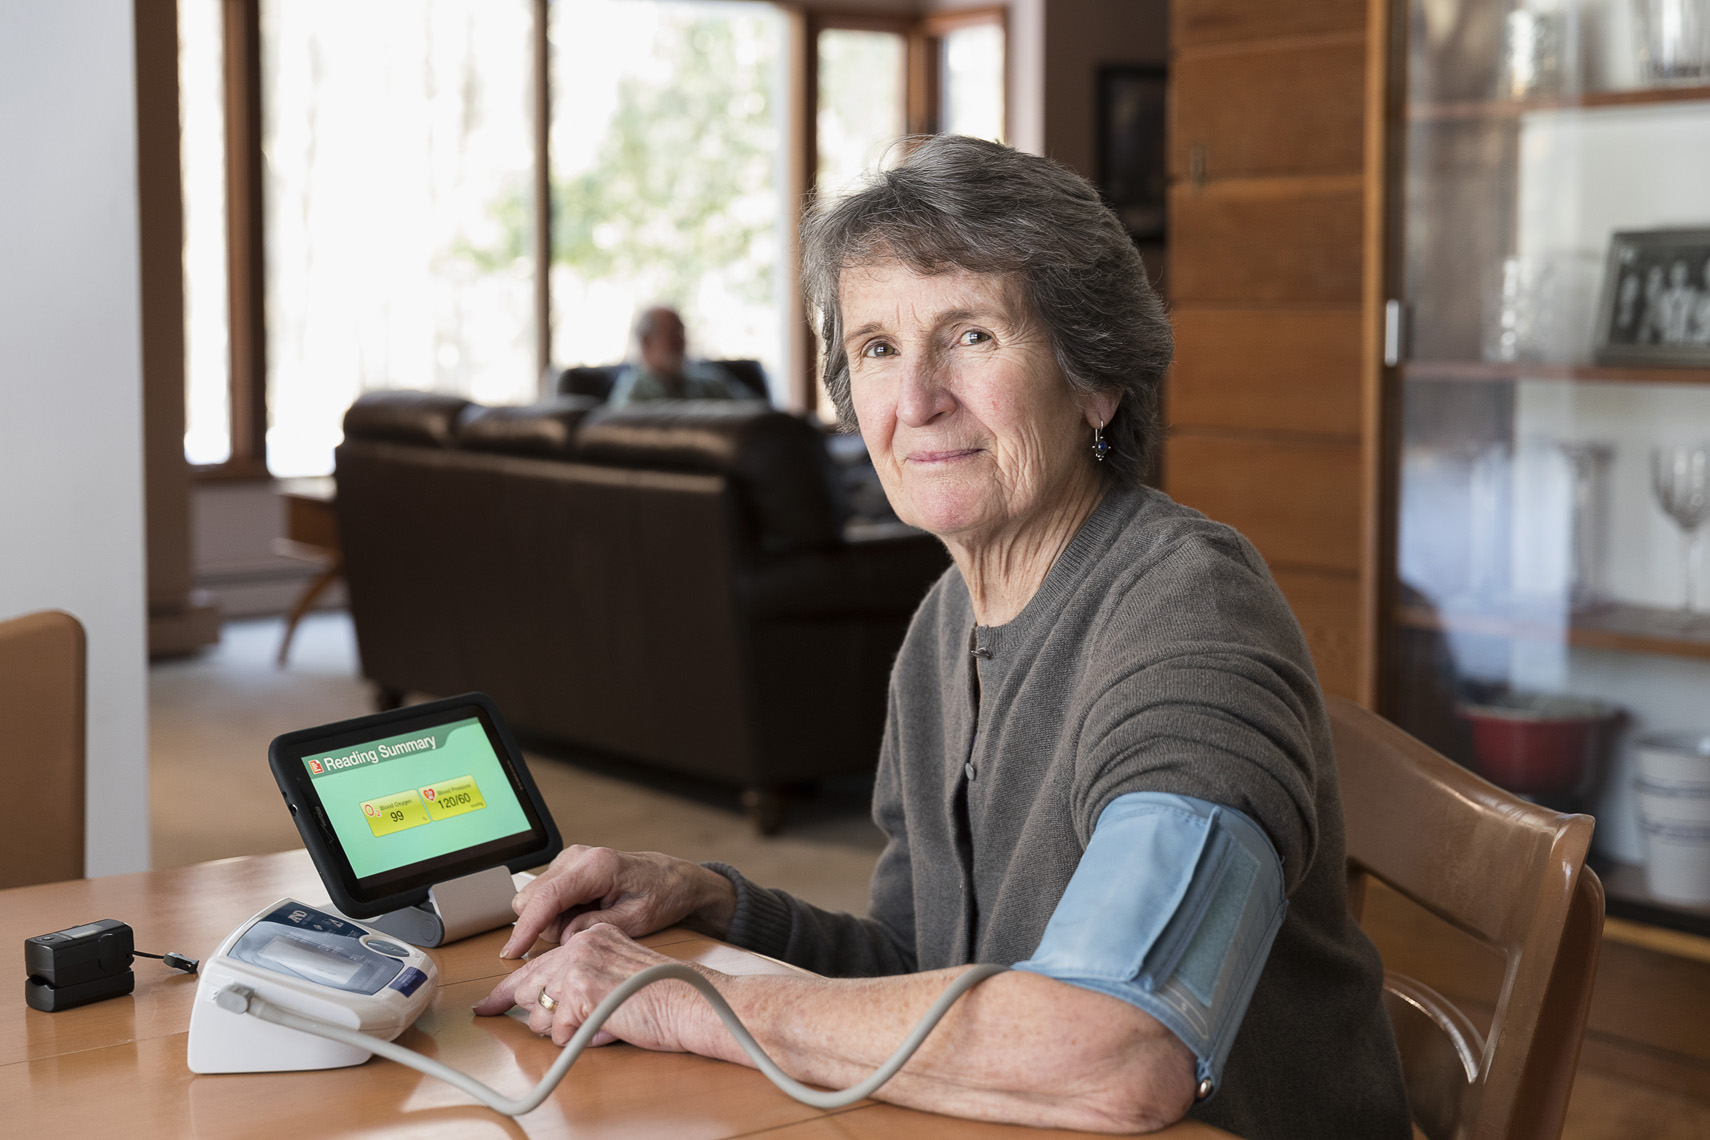 Home Health Care - remote monitoring device in use in Lewiston, Maine